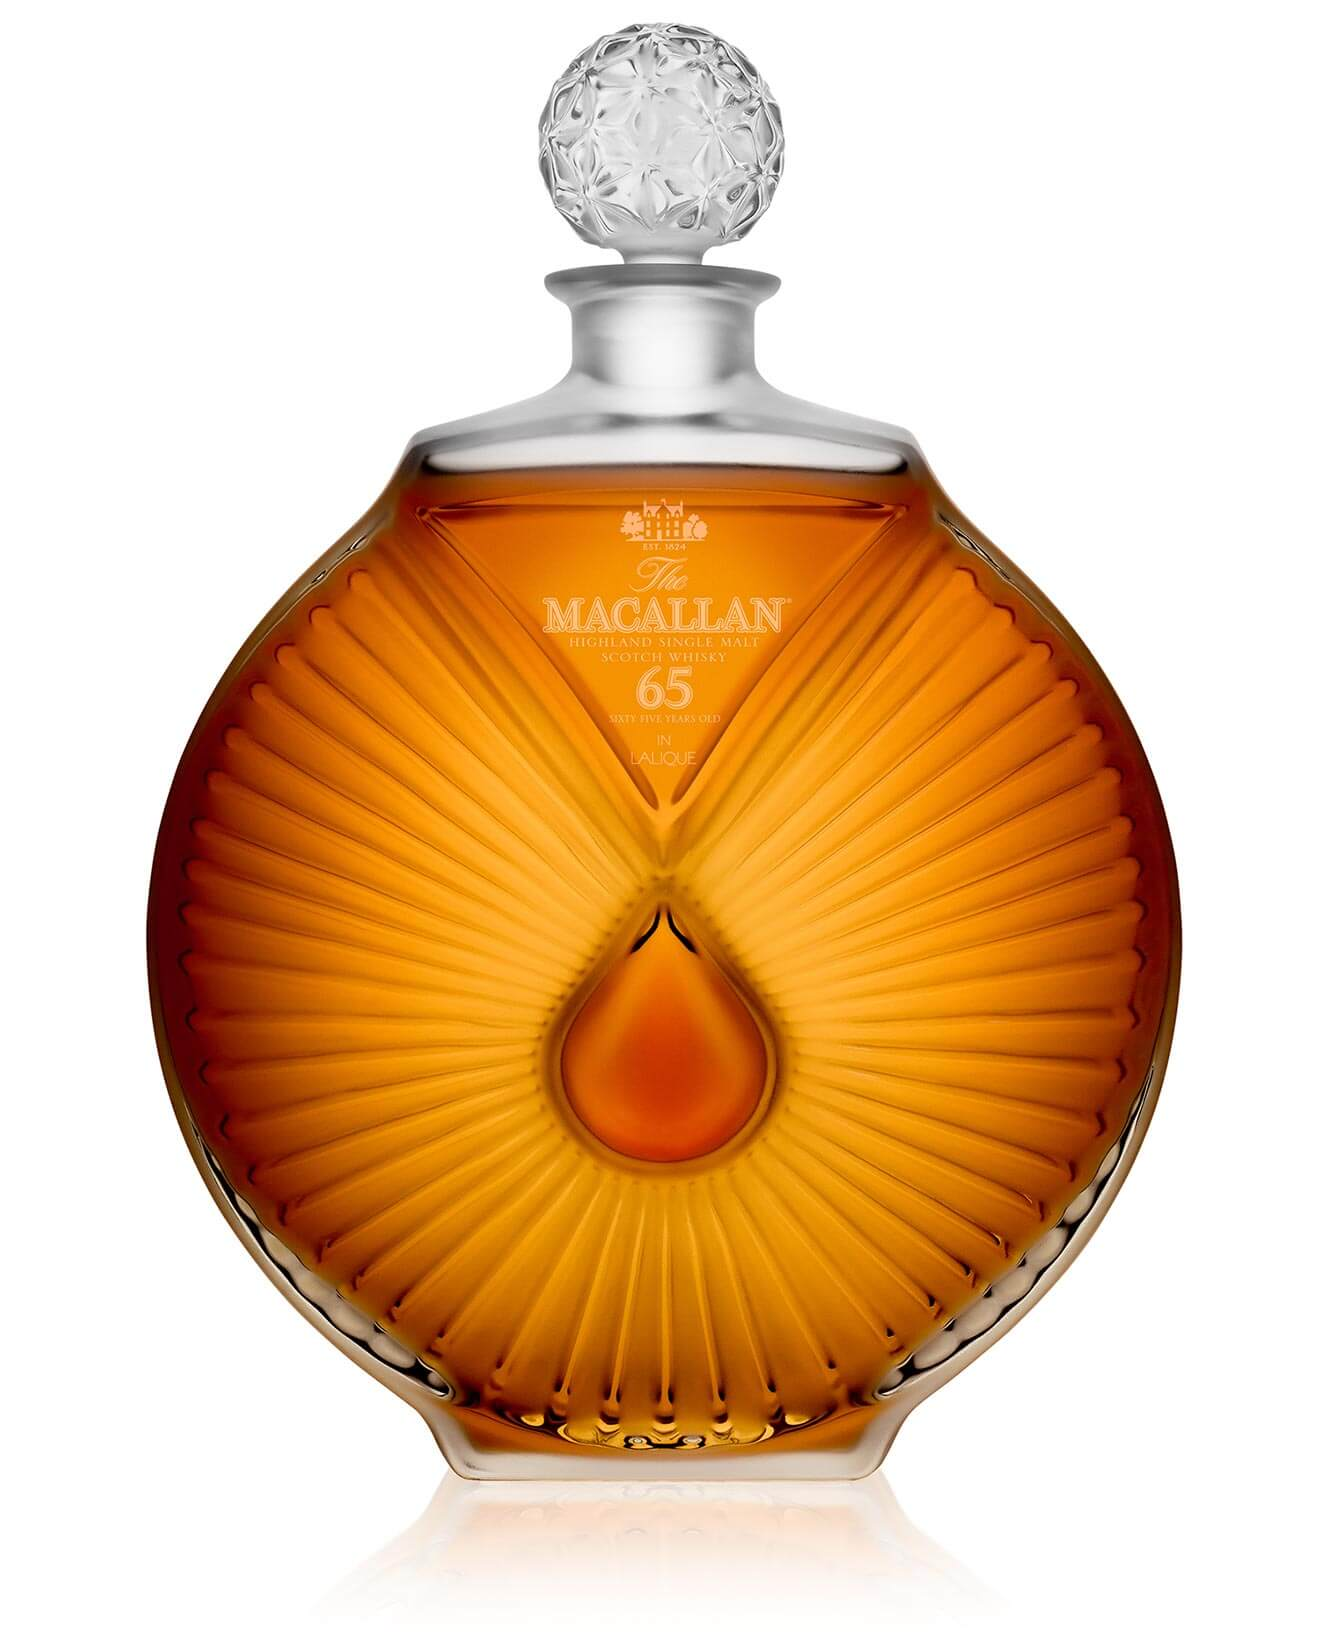 The Macallan 65 Years Old bottle